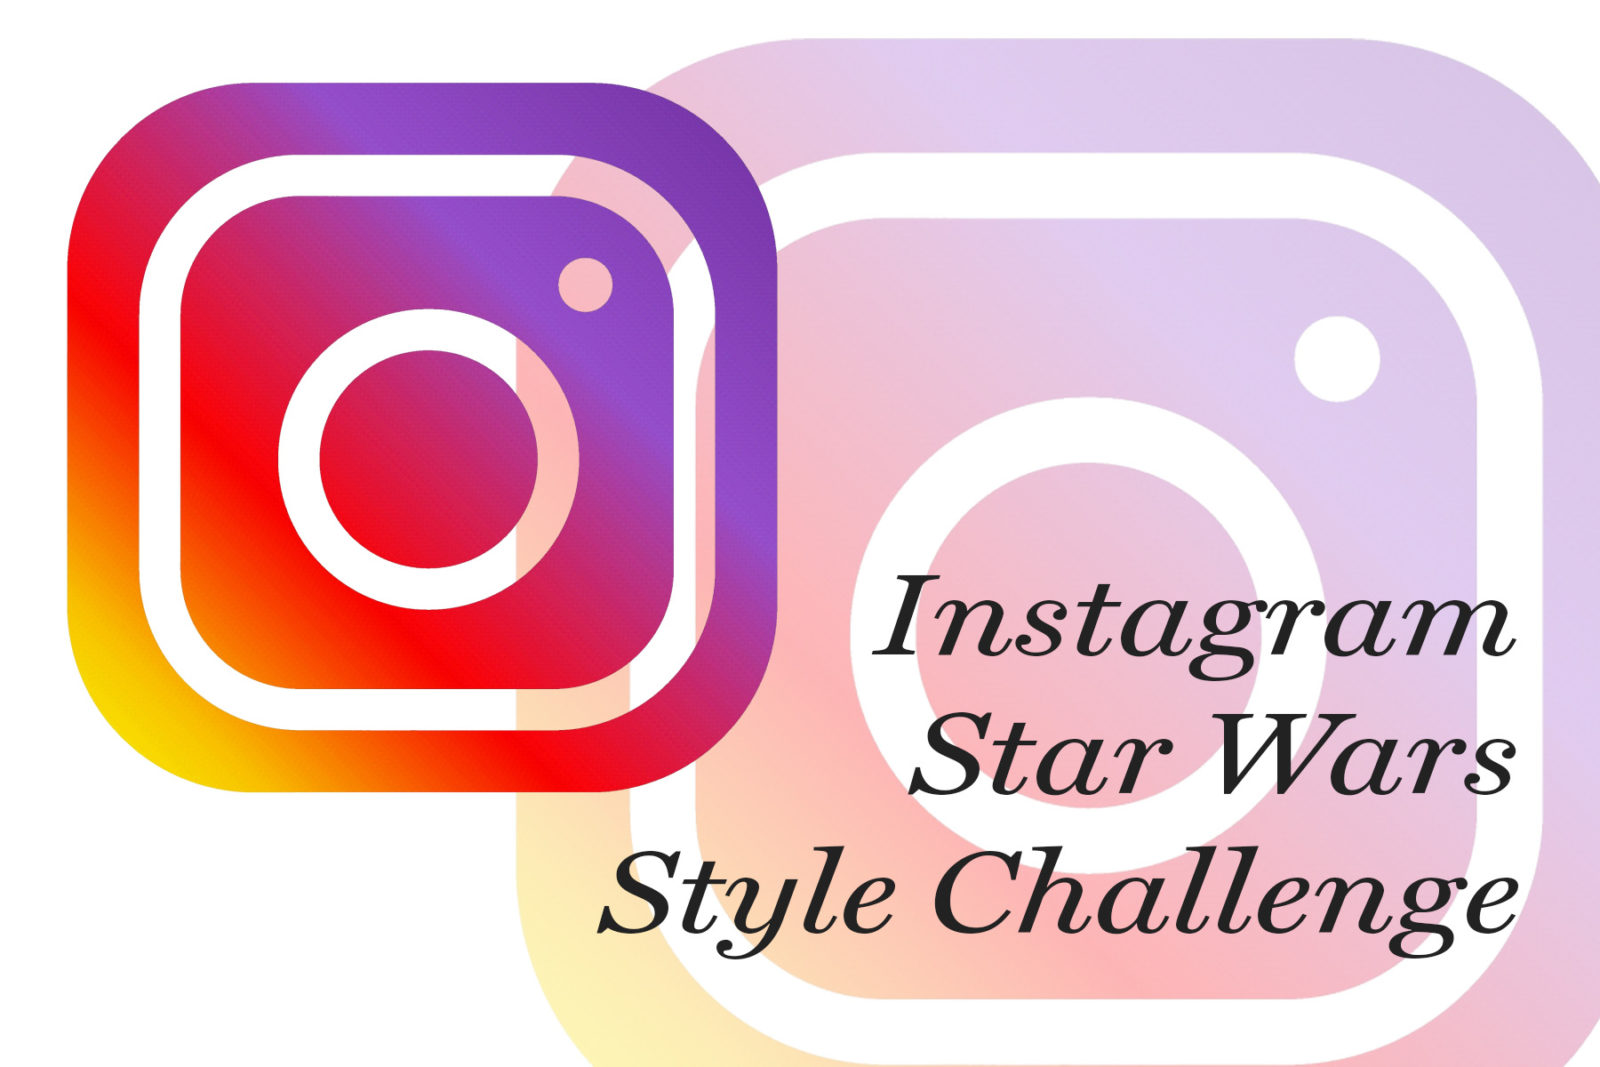 Star Wars Style Challenges on Instagram